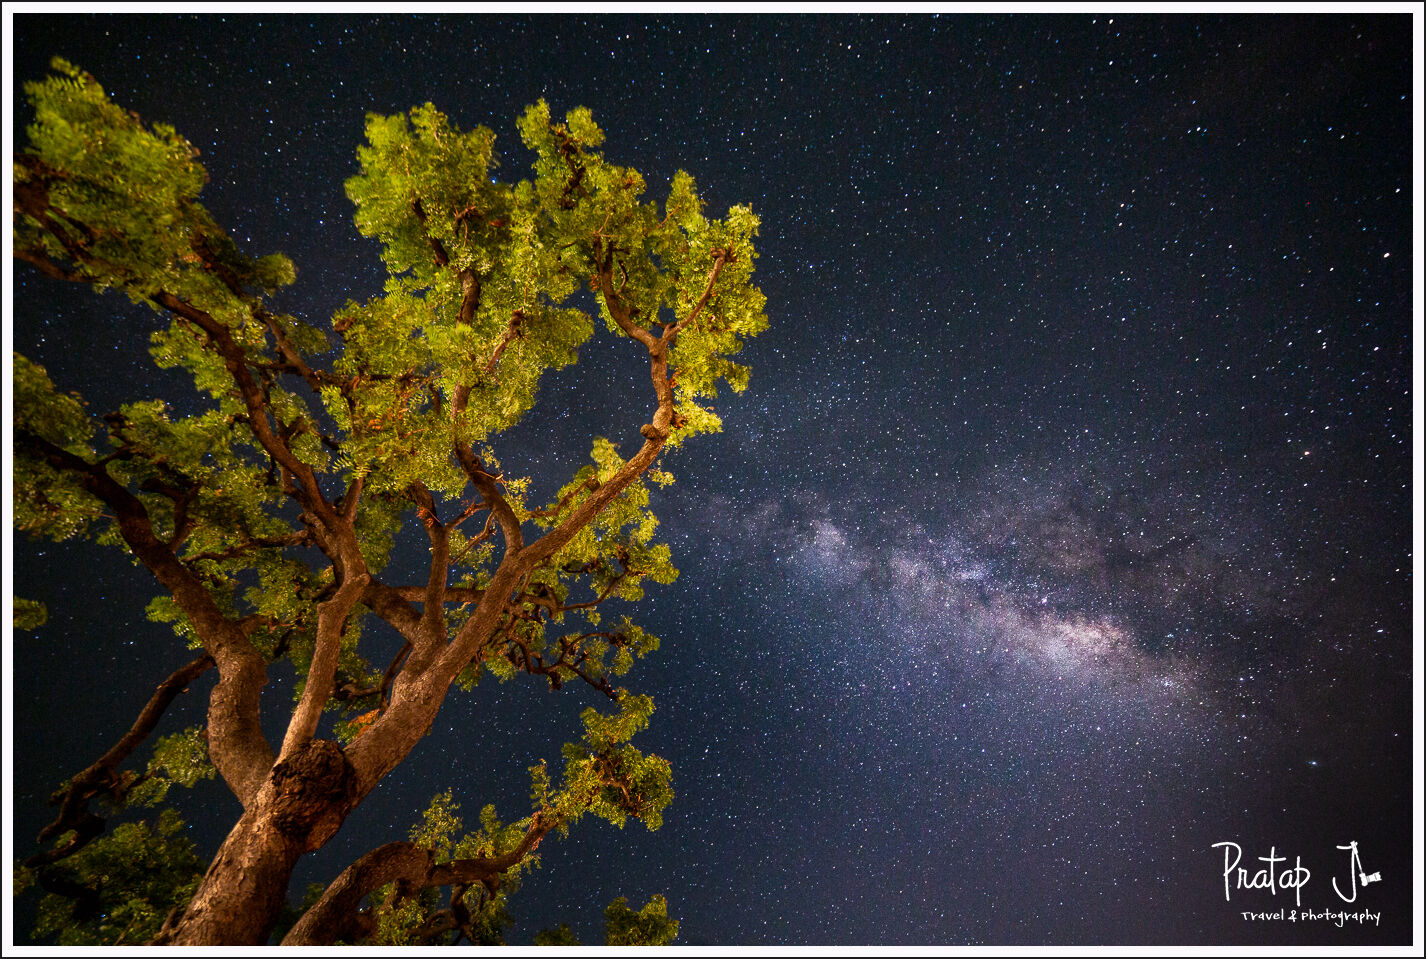 Milky Way in the night sky in Badami, Karnataka